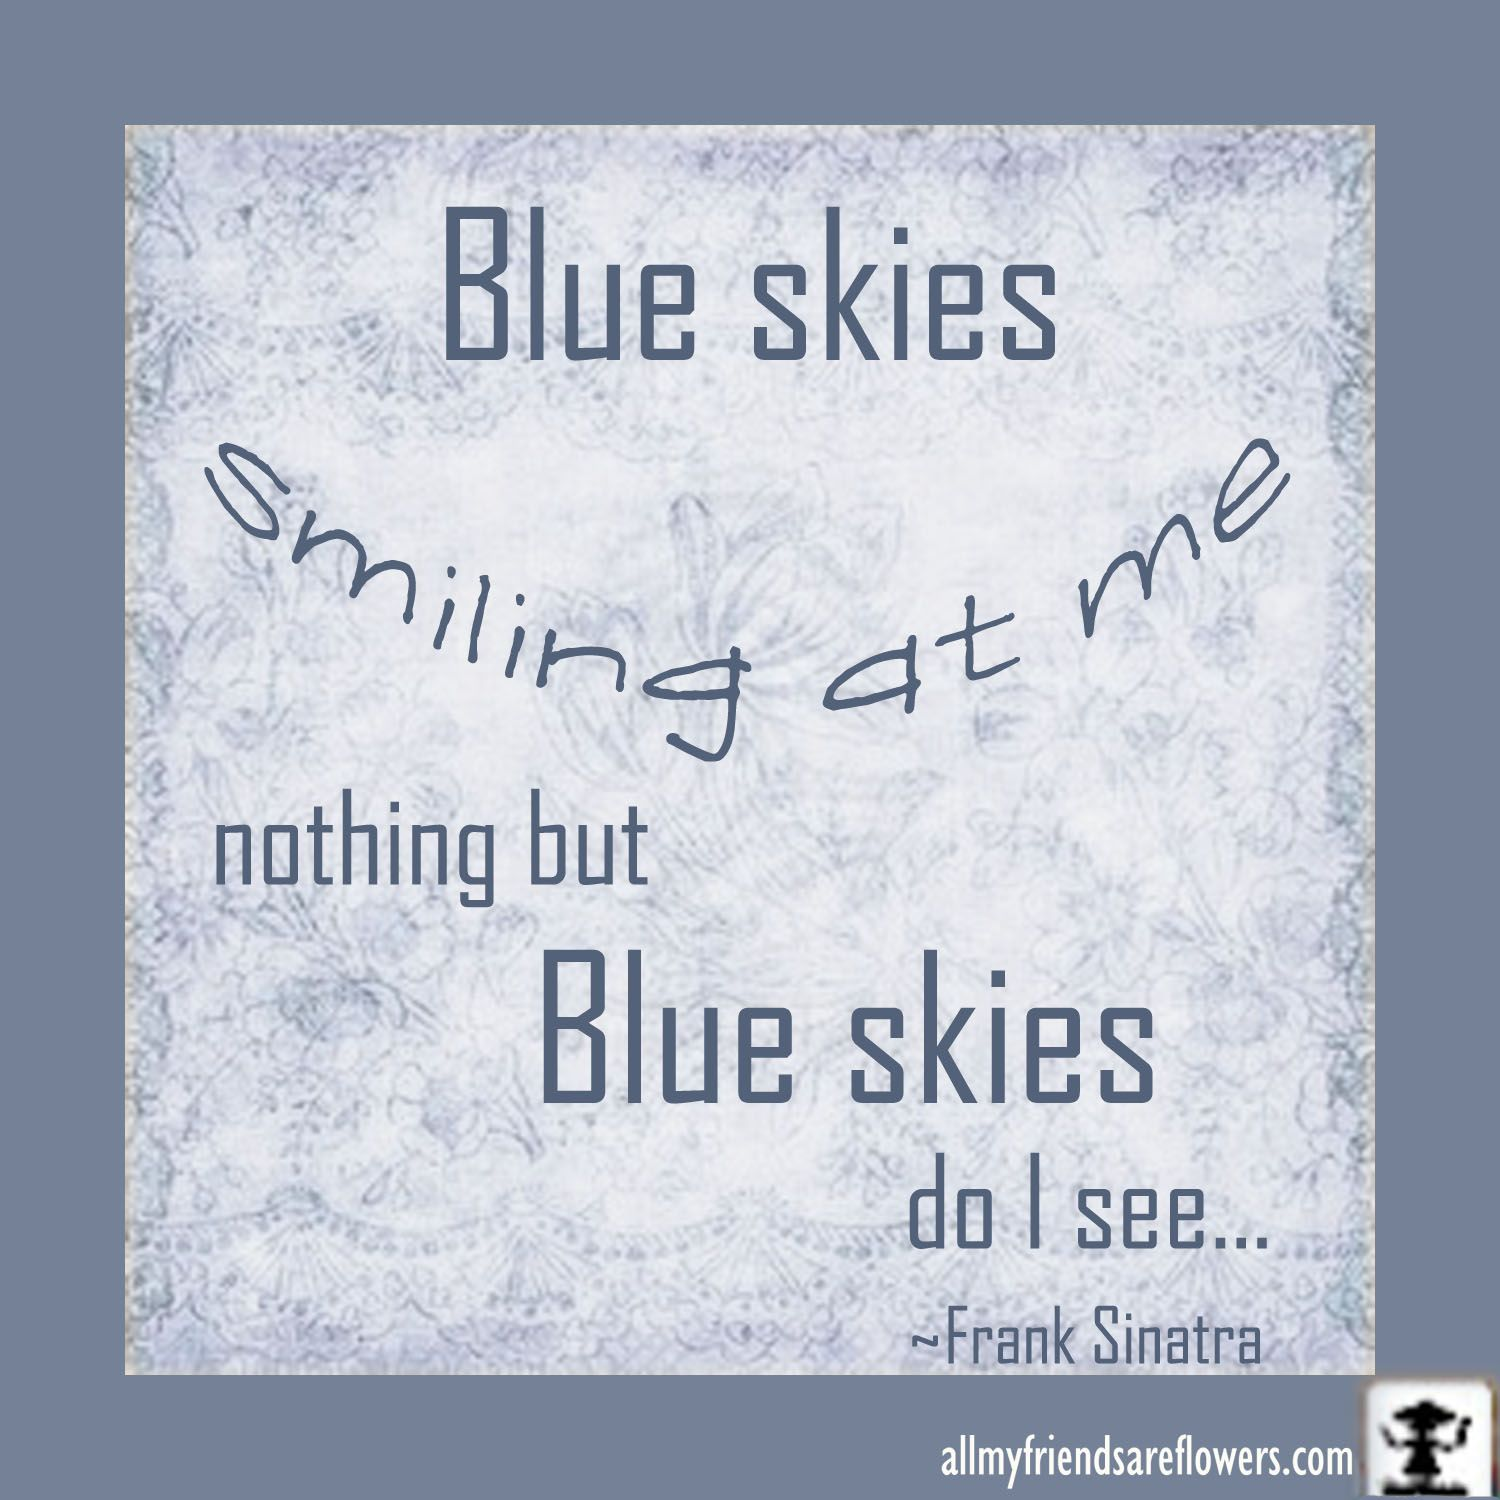 blue skies smiling at me nothing but blue skies do i see frank